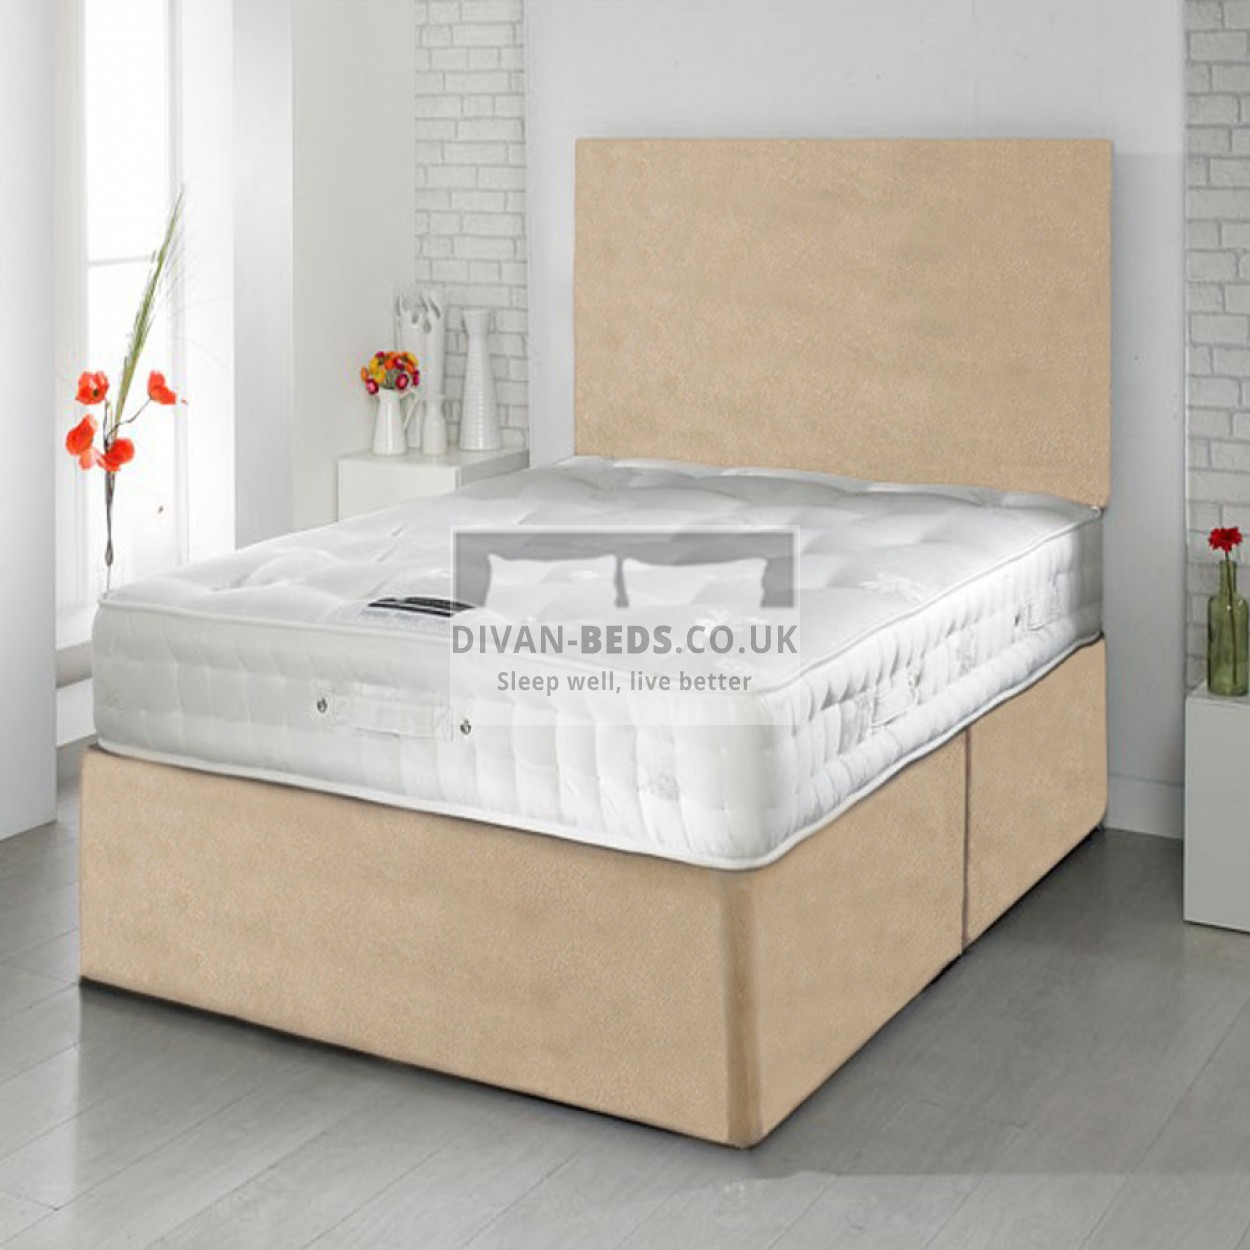 Rupert divan bed with 1500 pocket spring memory foam for Divan bed with memory foam mattress